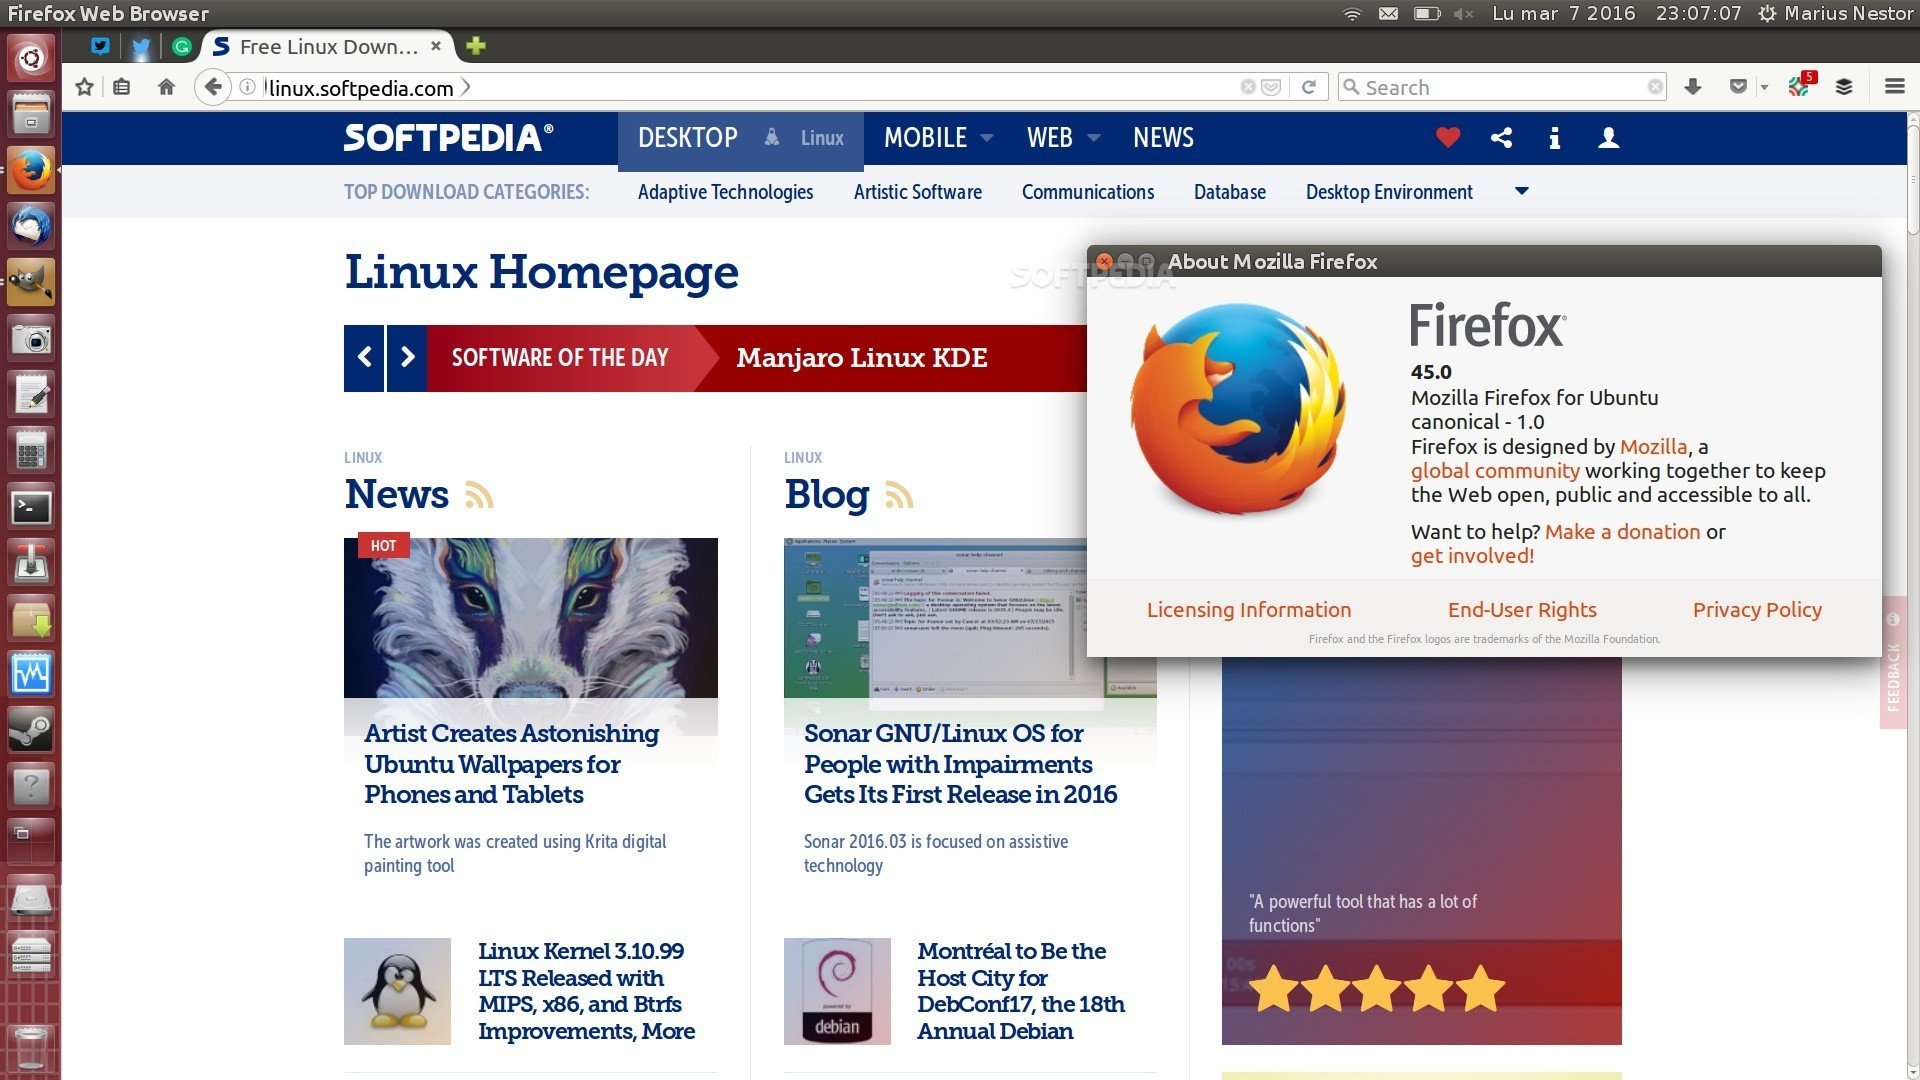 Mozilla Firefox 45 0 Gets Its First Point Release, Brings